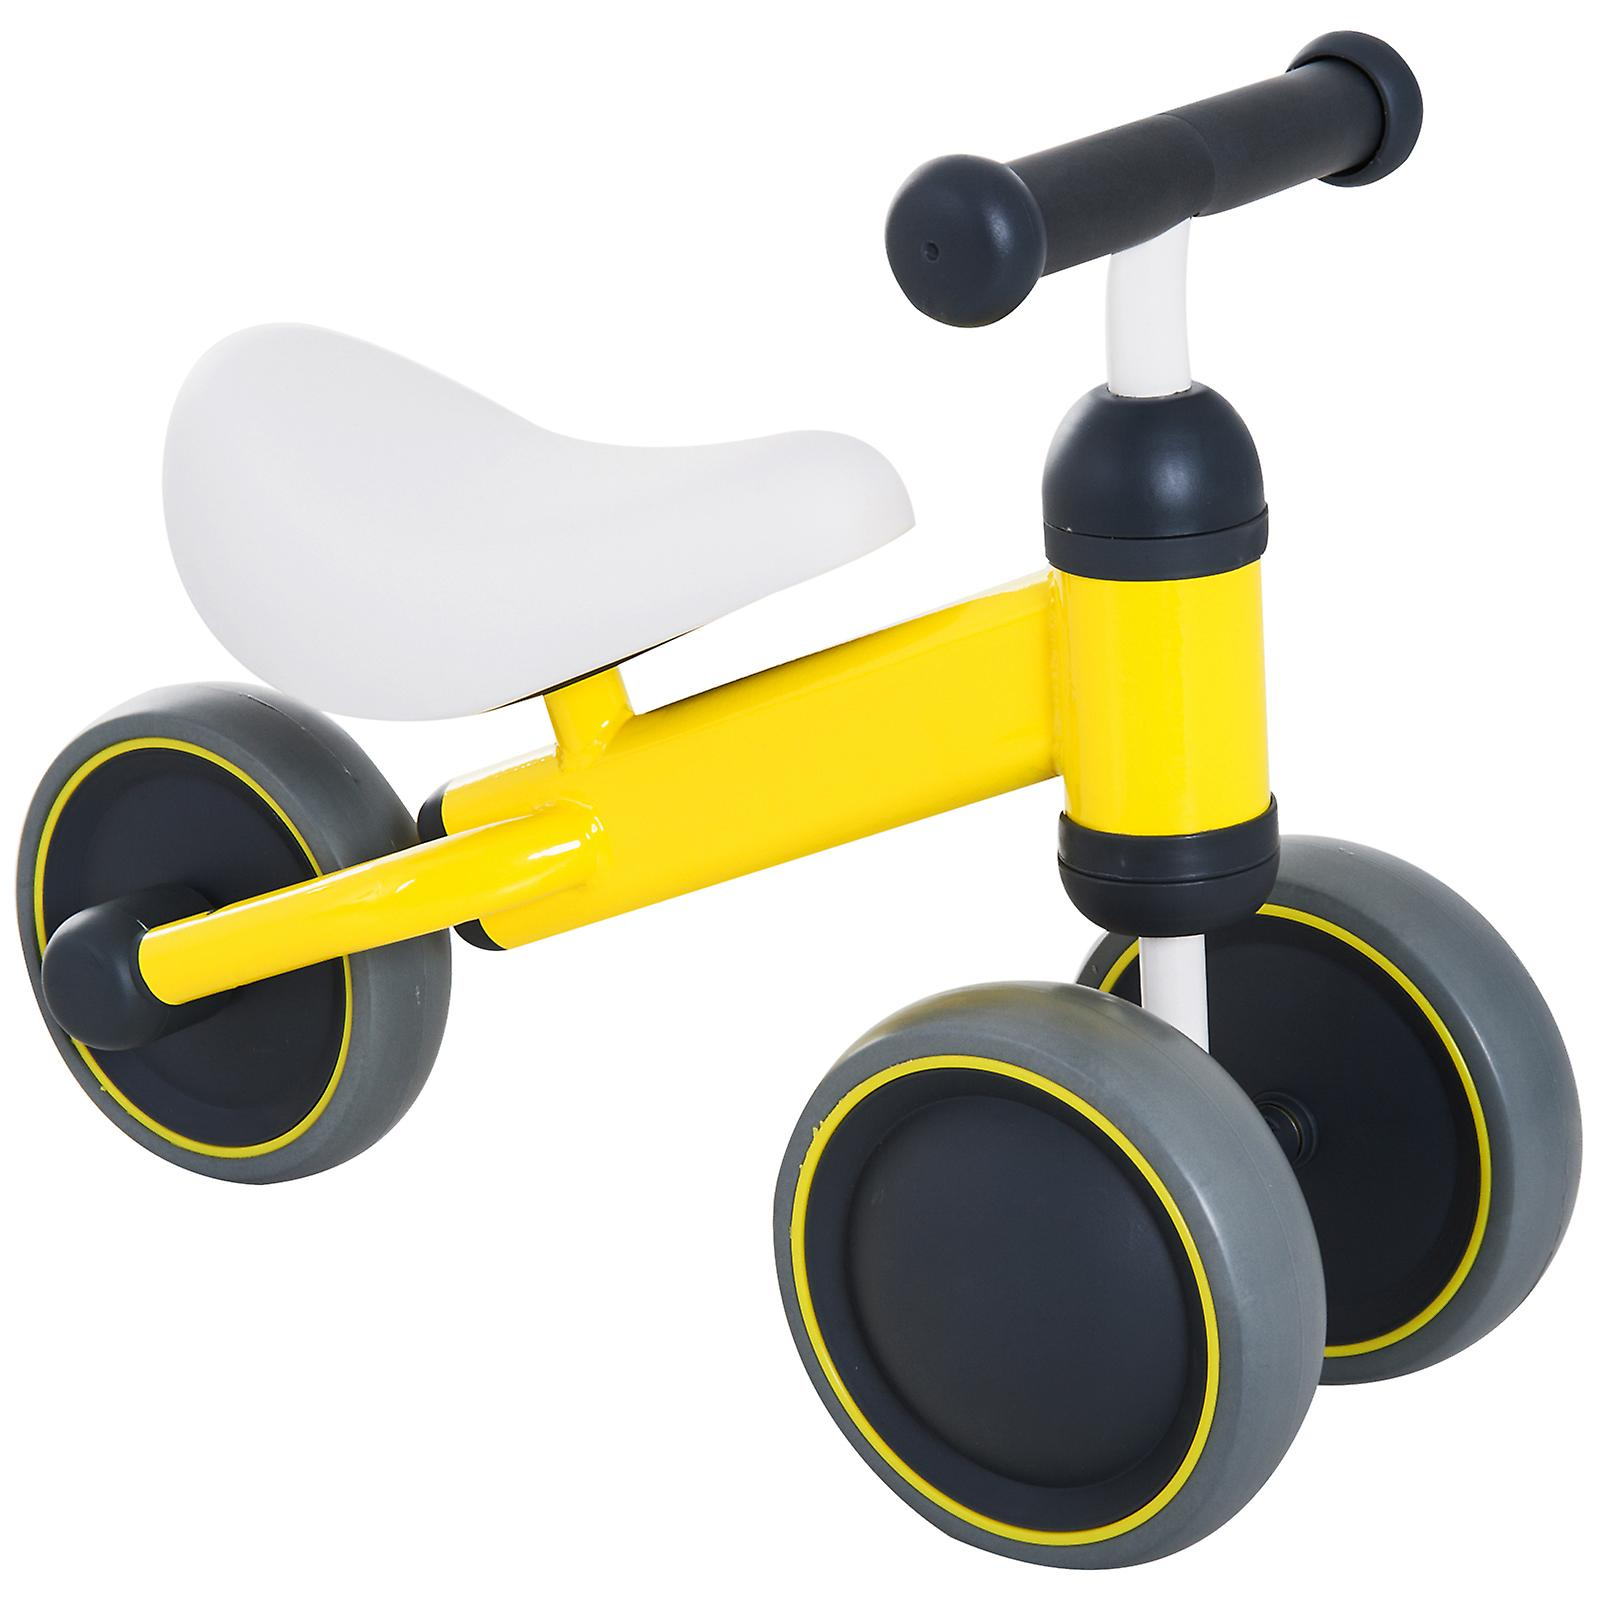 3c97241d42f HOMCOM Kids Baby Toddler Trike 3 Wheel Ride-on Cycle Tricycle for Balance  Training Yellow